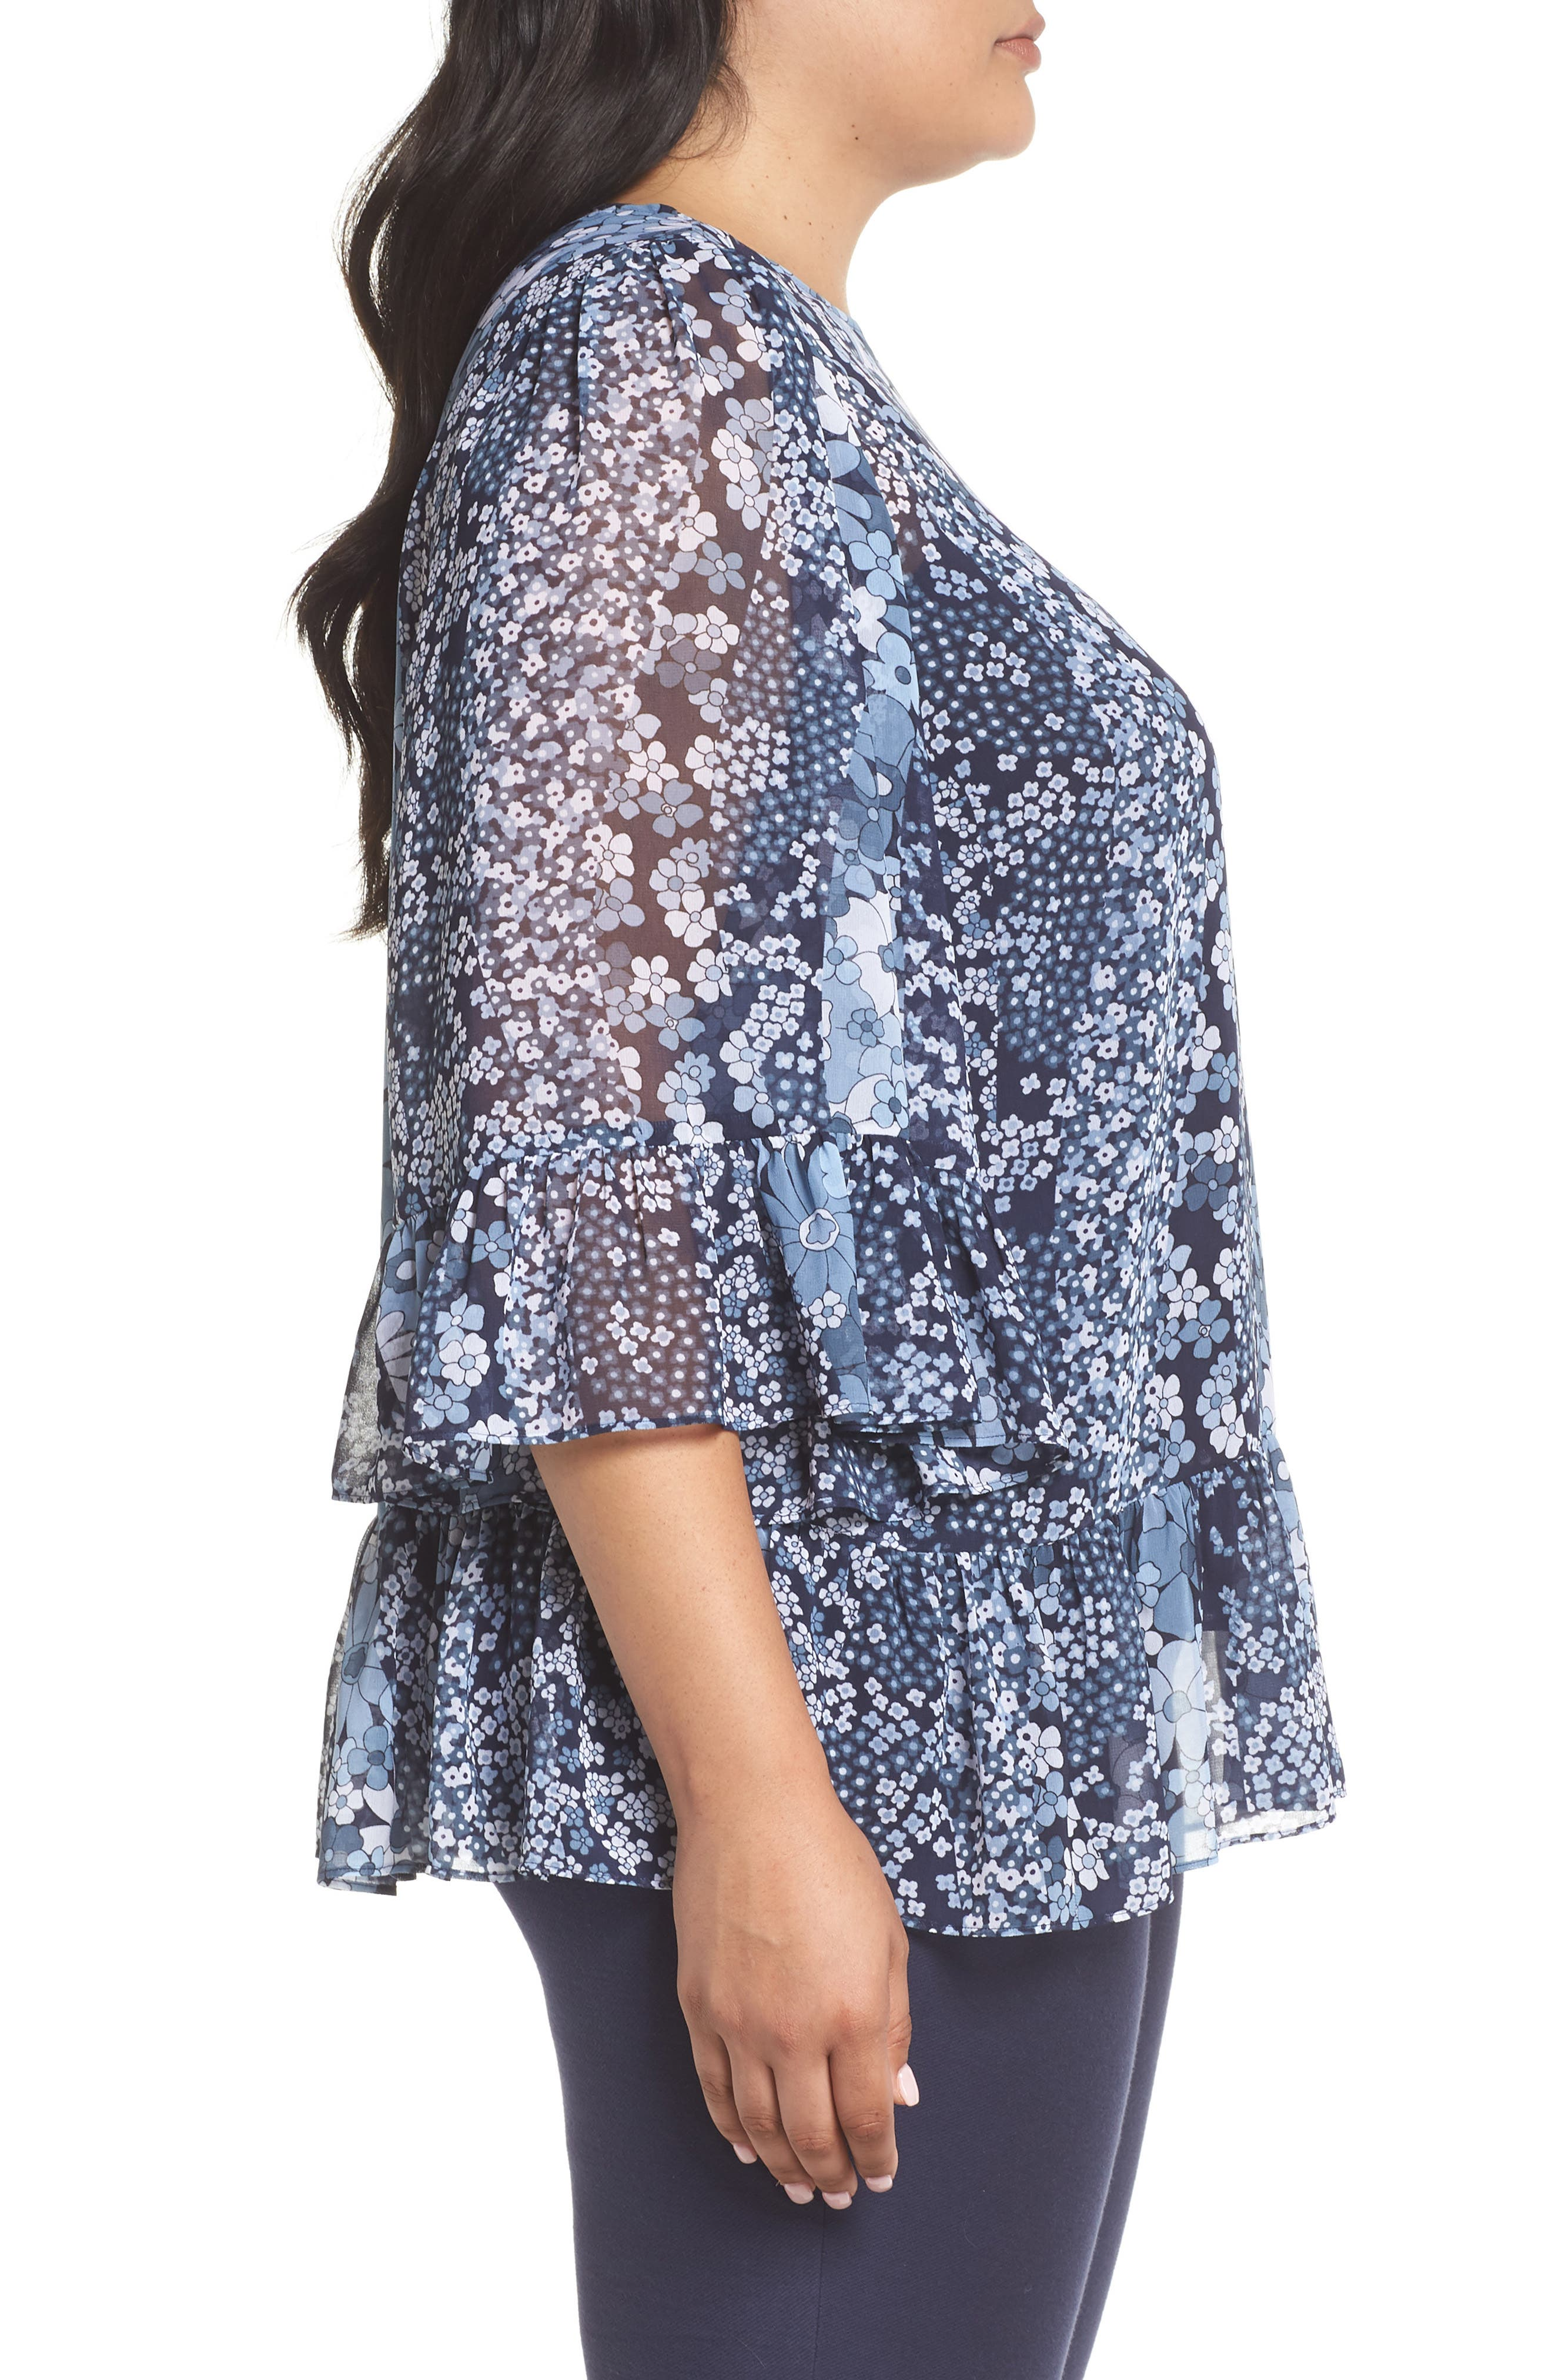 Patchwork Flowers Top,                             Alternate thumbnail 3, color,                             True Navy/ Light Chambray